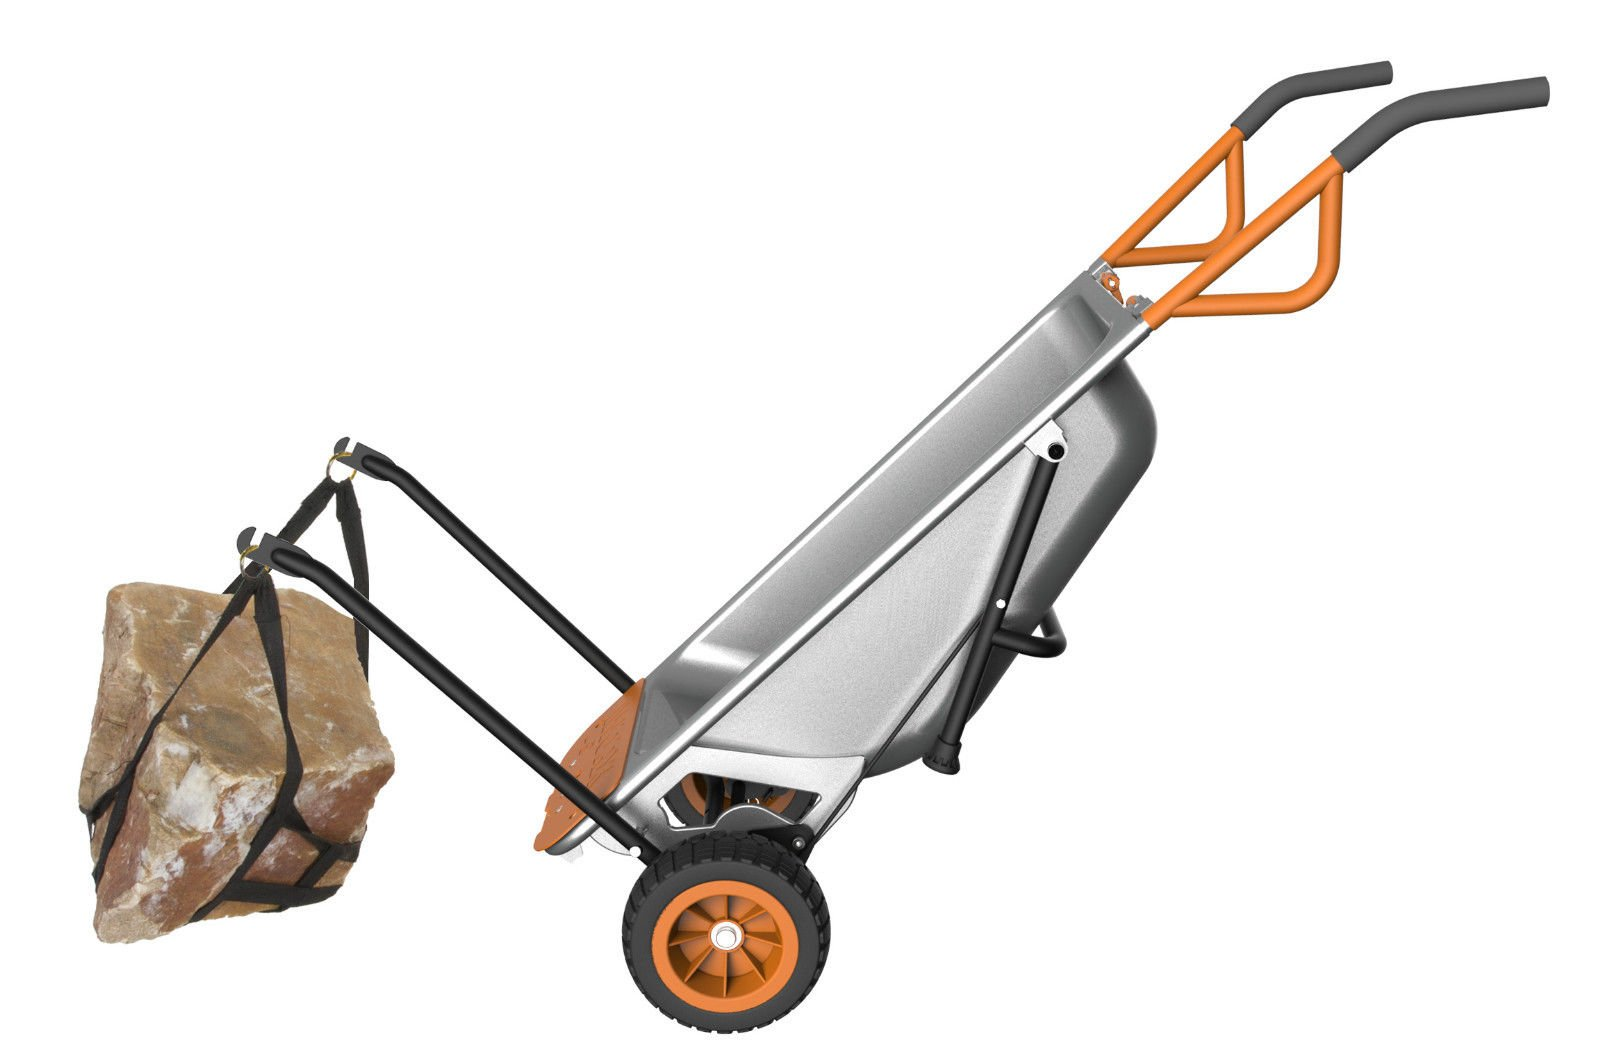 Aero Cart 8-in-1 Multi-Function Wheel Barrow Yard Cart